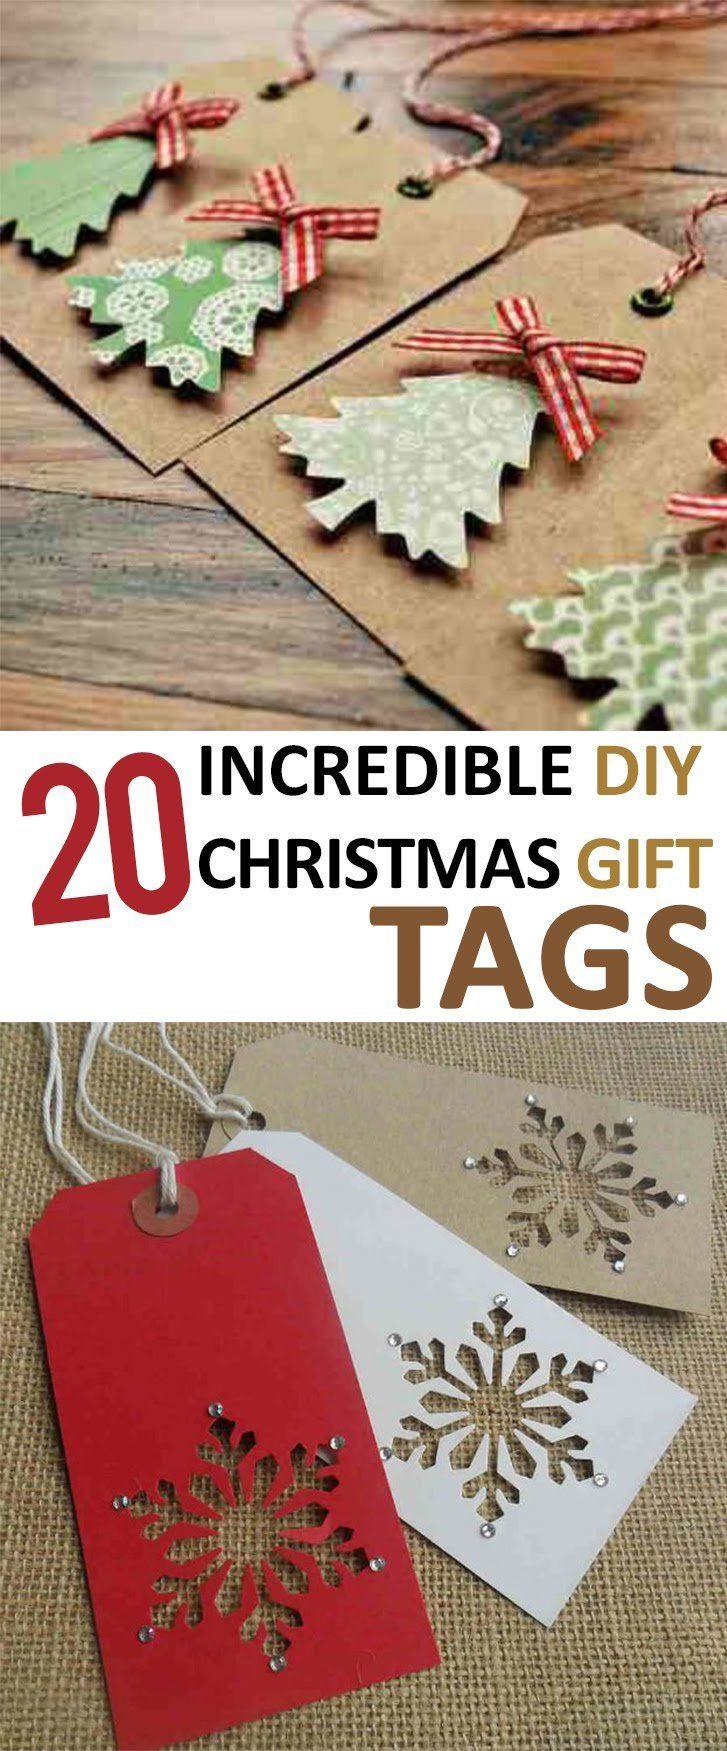 Christmas tag ideas for gifts